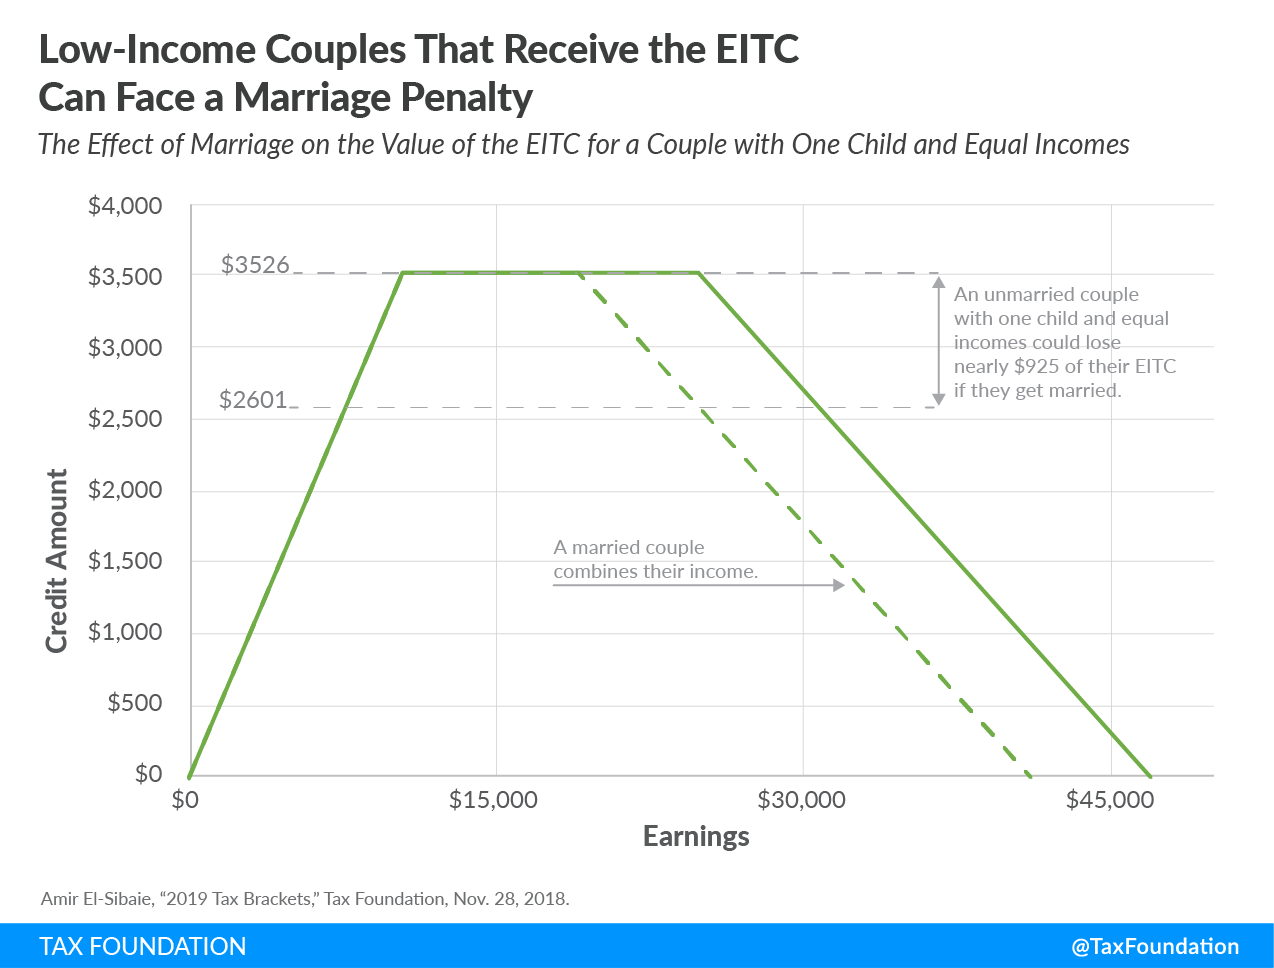 Low-income couples that receive the EITC can face a marriage penalty, earned income tax credit, EITC marriage penalty